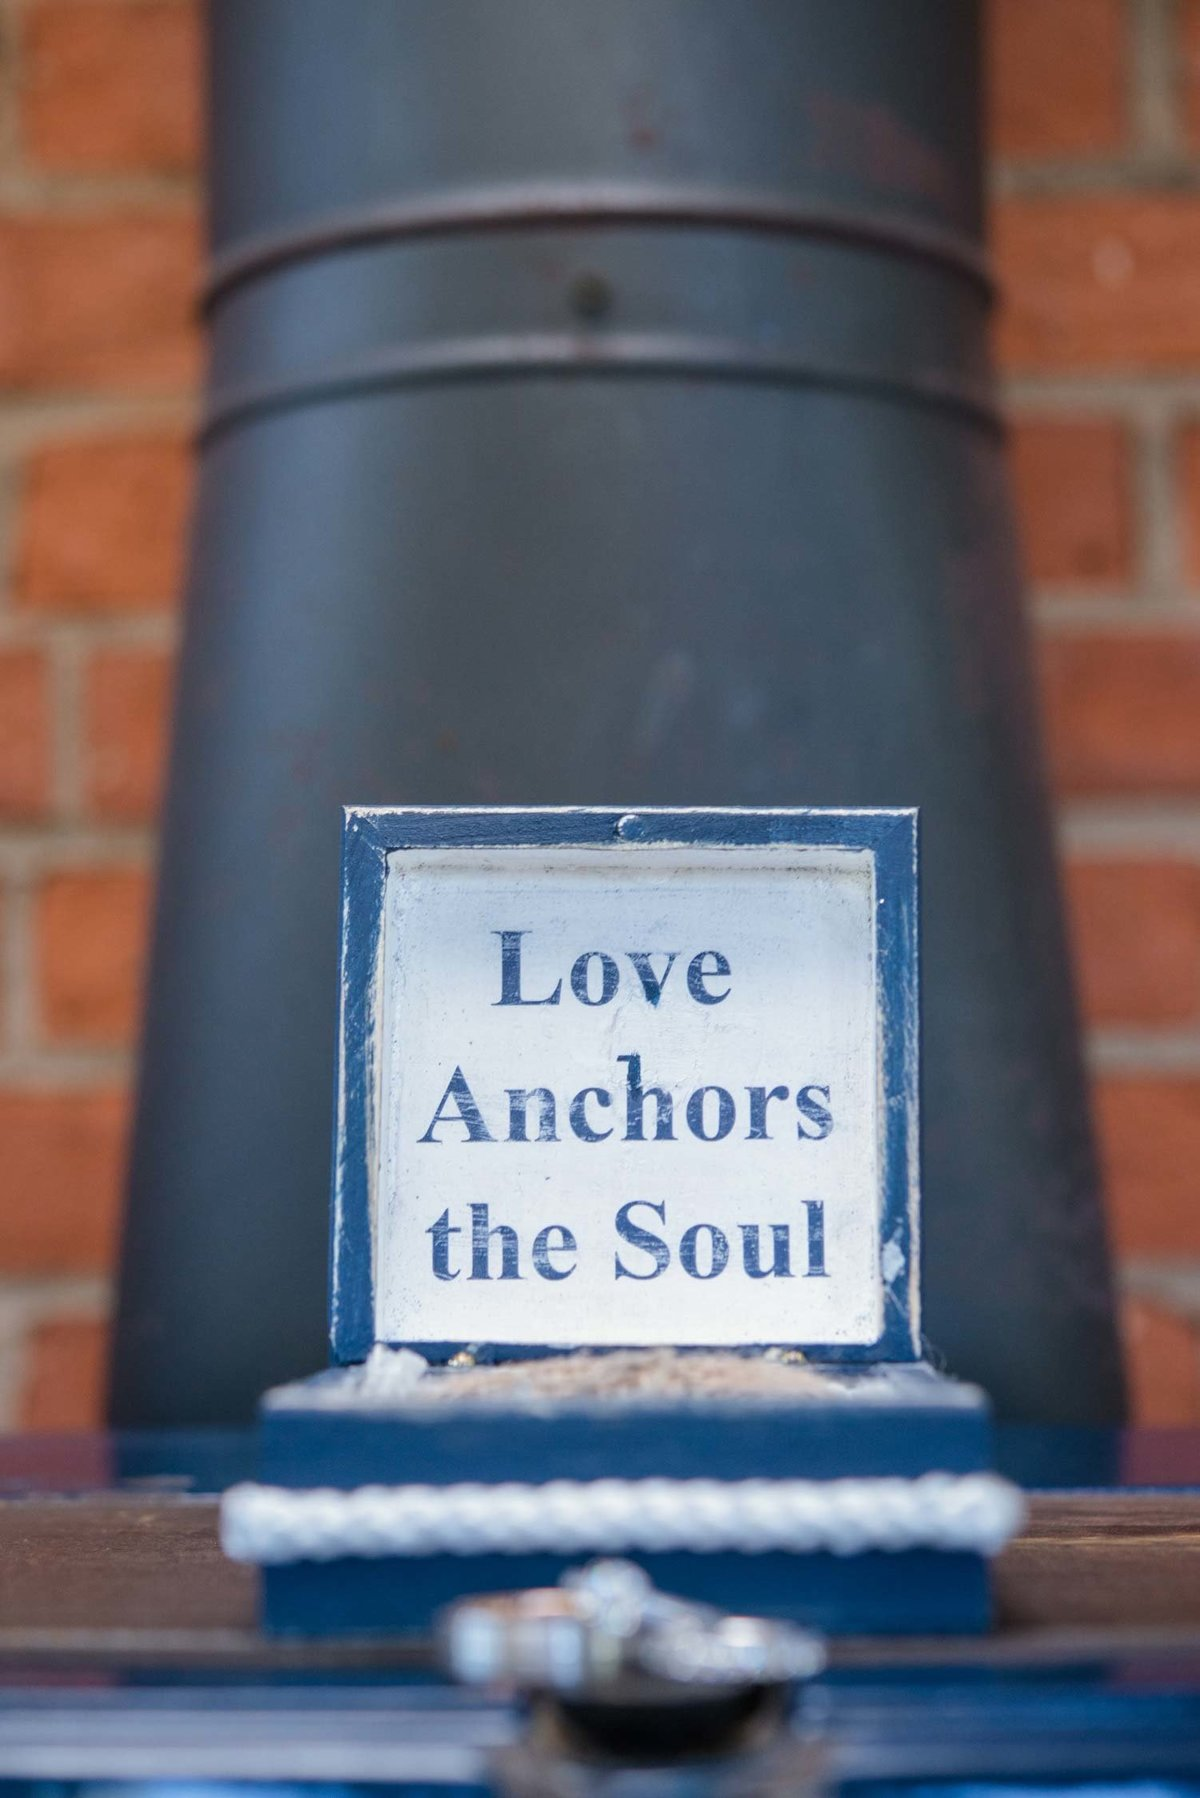 Love anchors the soul sign at The Ram's Head Inn